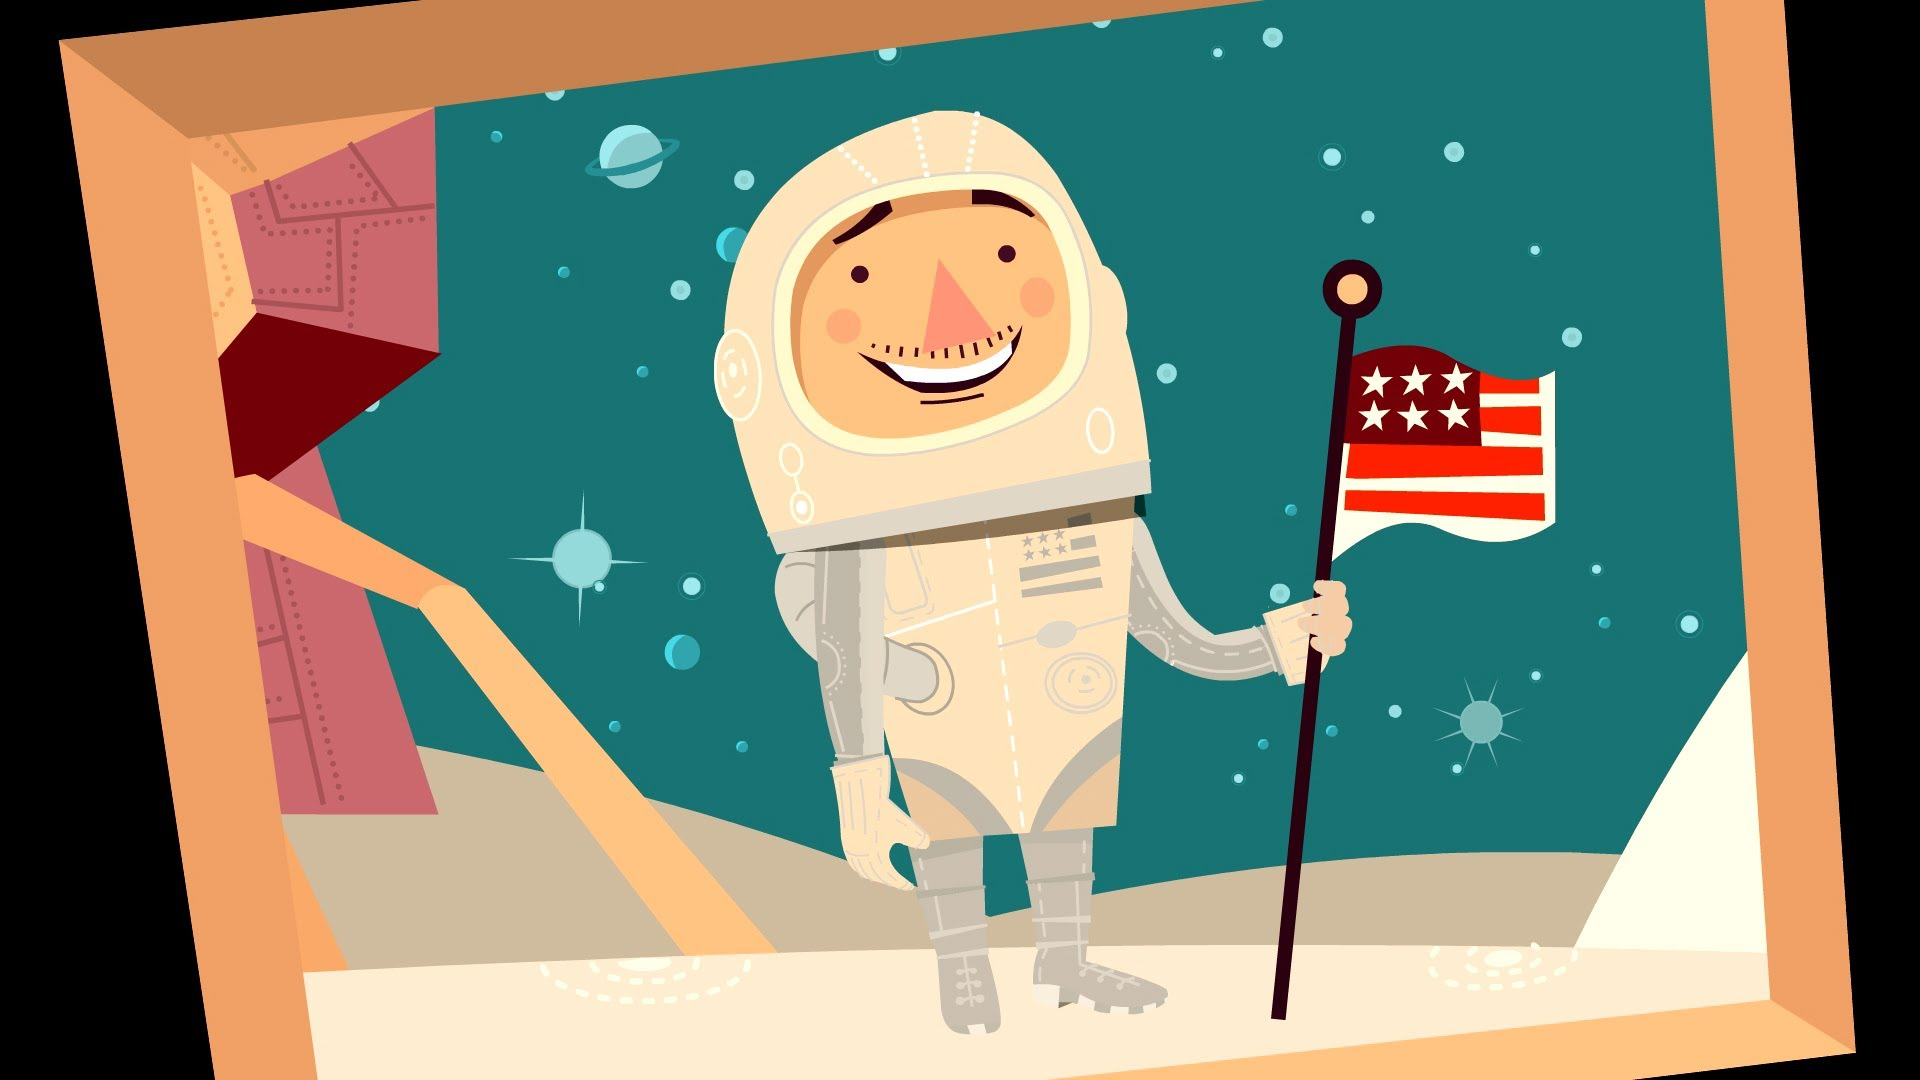 Space clipart space race. Who won the jeff